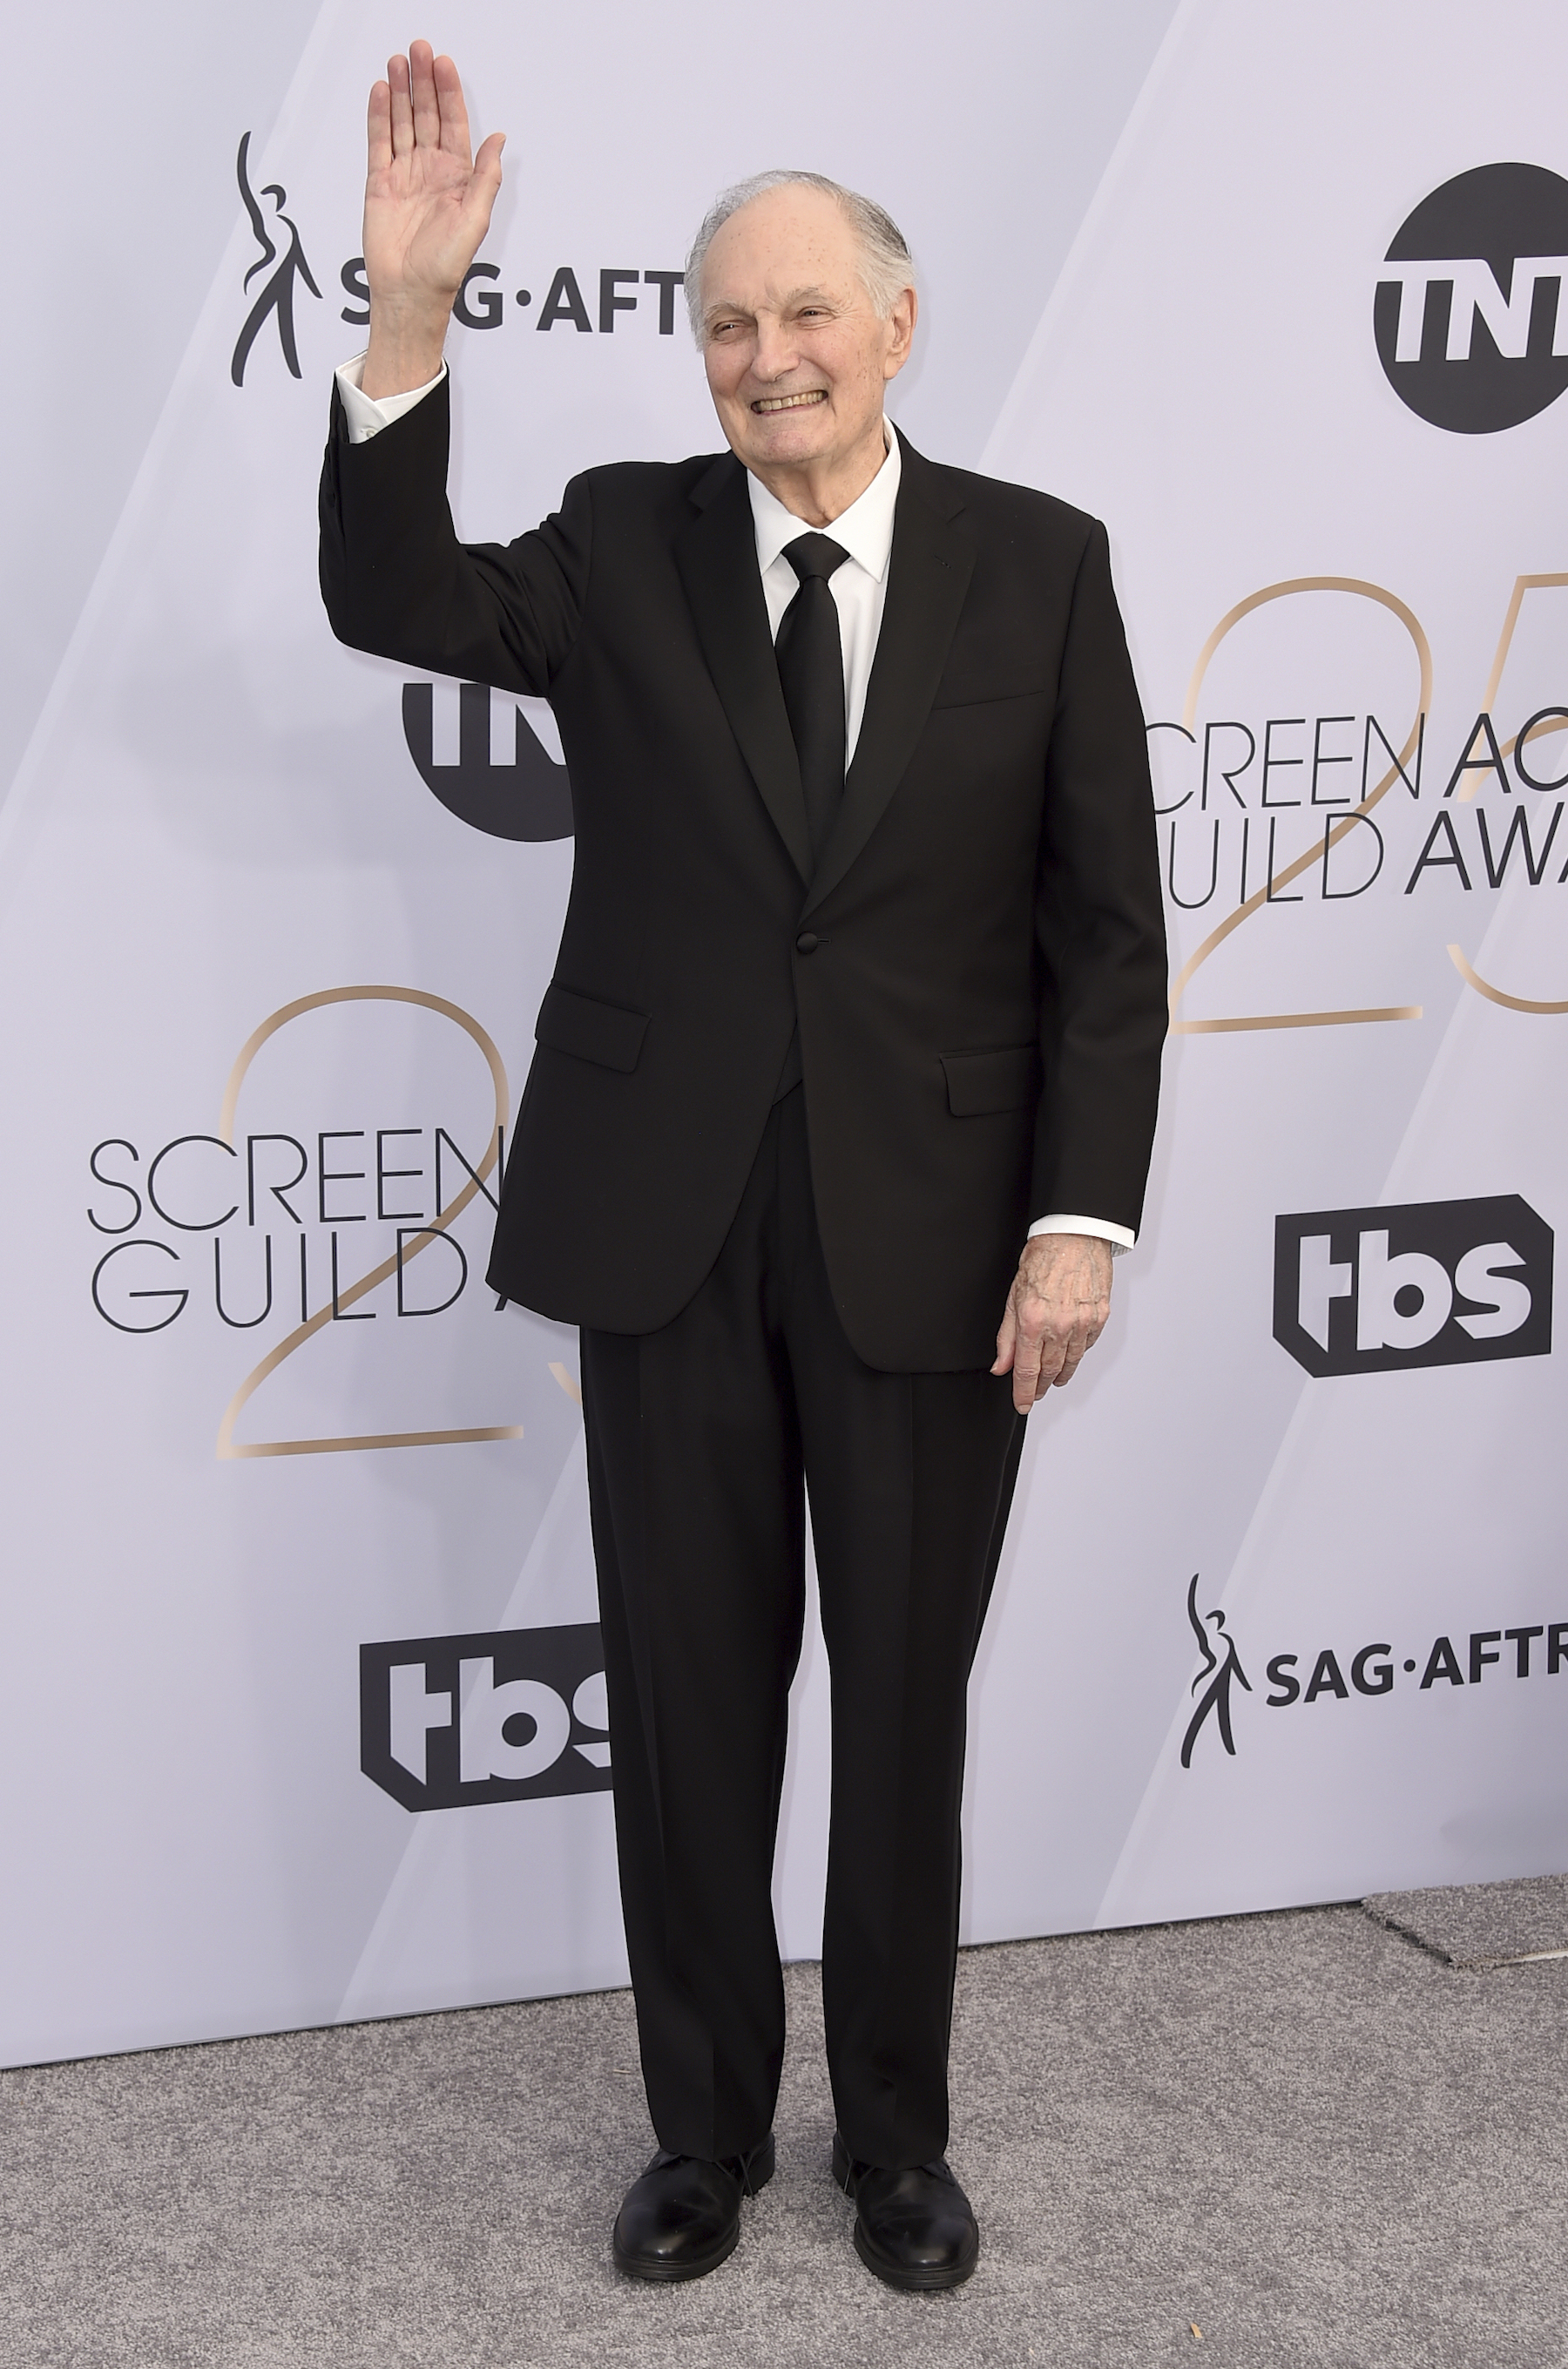 "<div class=""meta image-caption""><div class=""origin-logo origin-image ap""><span>AP</span></div><span class=""caption-text"">Alan Alda arrives at the 25th annual Screen Actors Guild Awards at the Shrine Auditorium & Expo Hall on Sunday, Jan. 27, 2019, in Los Angeles. (Jordan Strauss/Invision/AP)</span></div>"